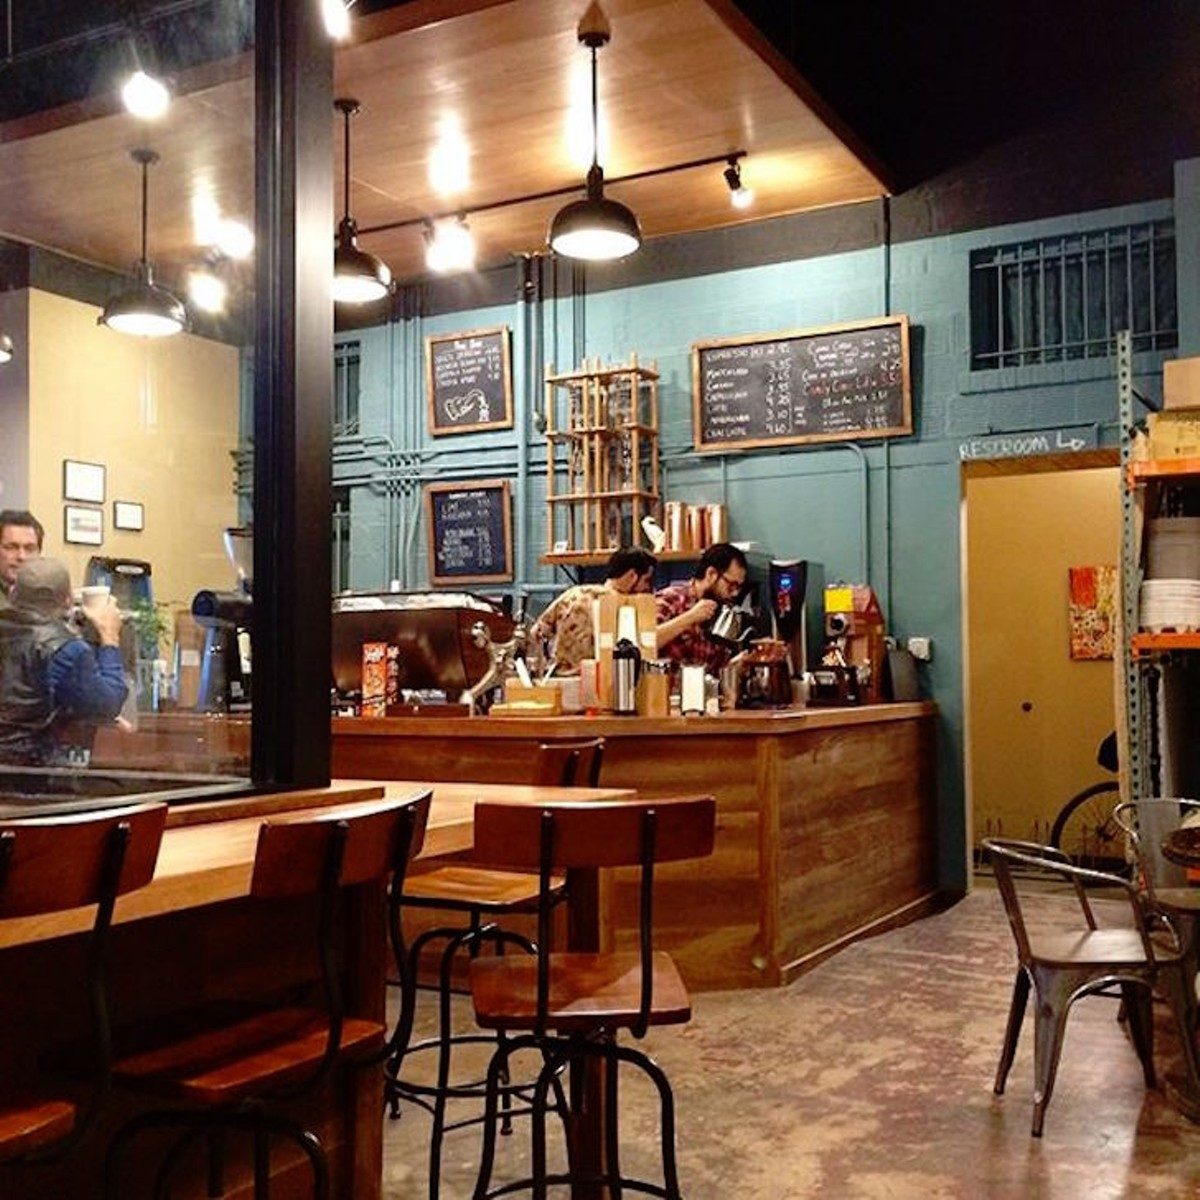 70 Coolest Coffee Shop Design Ideas: 25 Coffee Shops You Should Visit In San Antonio That Aren